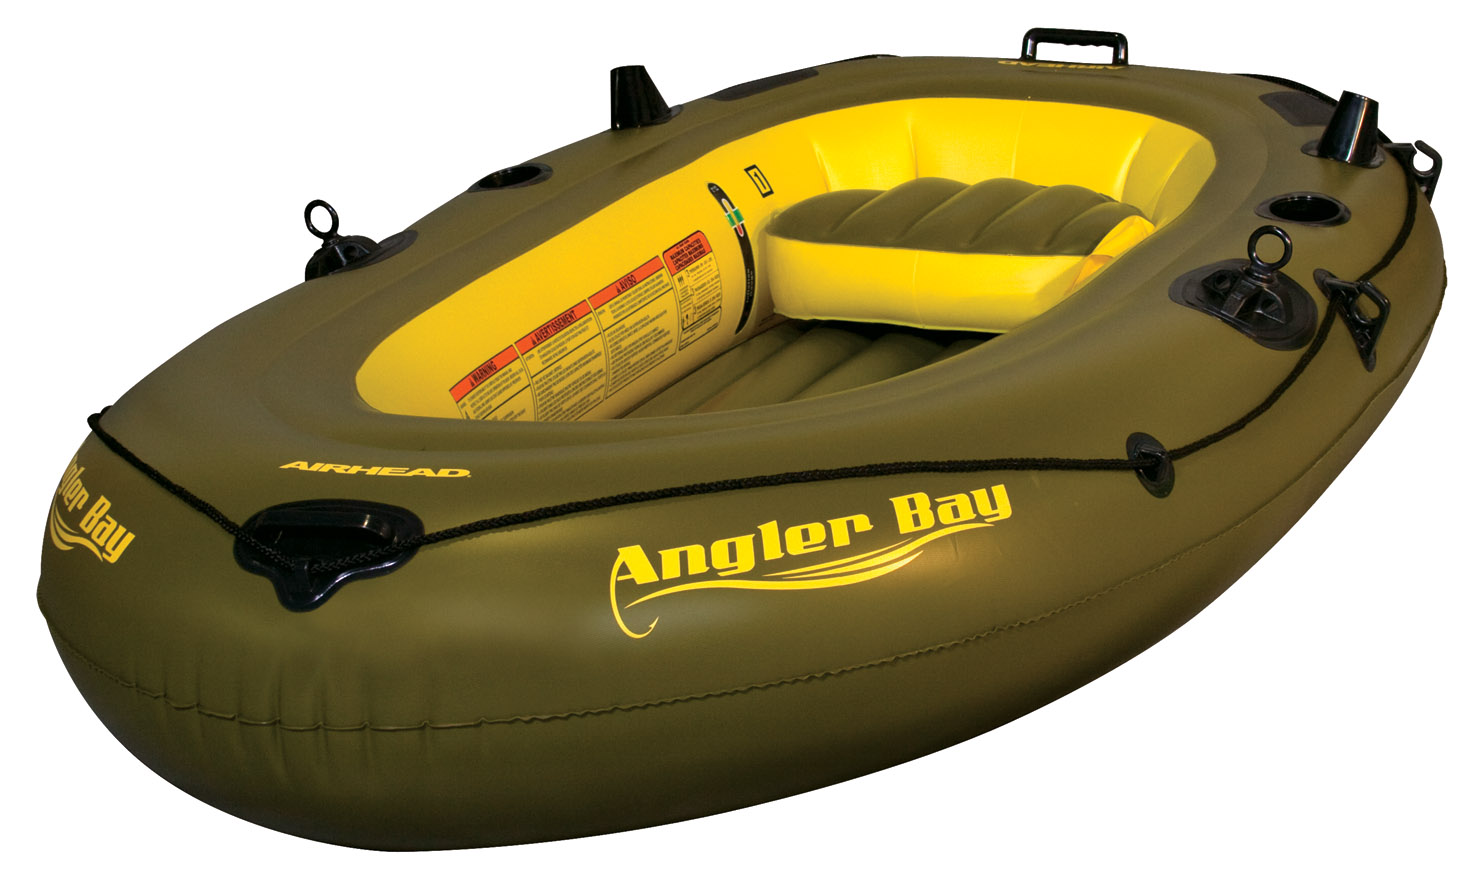 ANGLER BAY Inflatable Boat, 3 person by AIRHEAD SPORTS GROUP